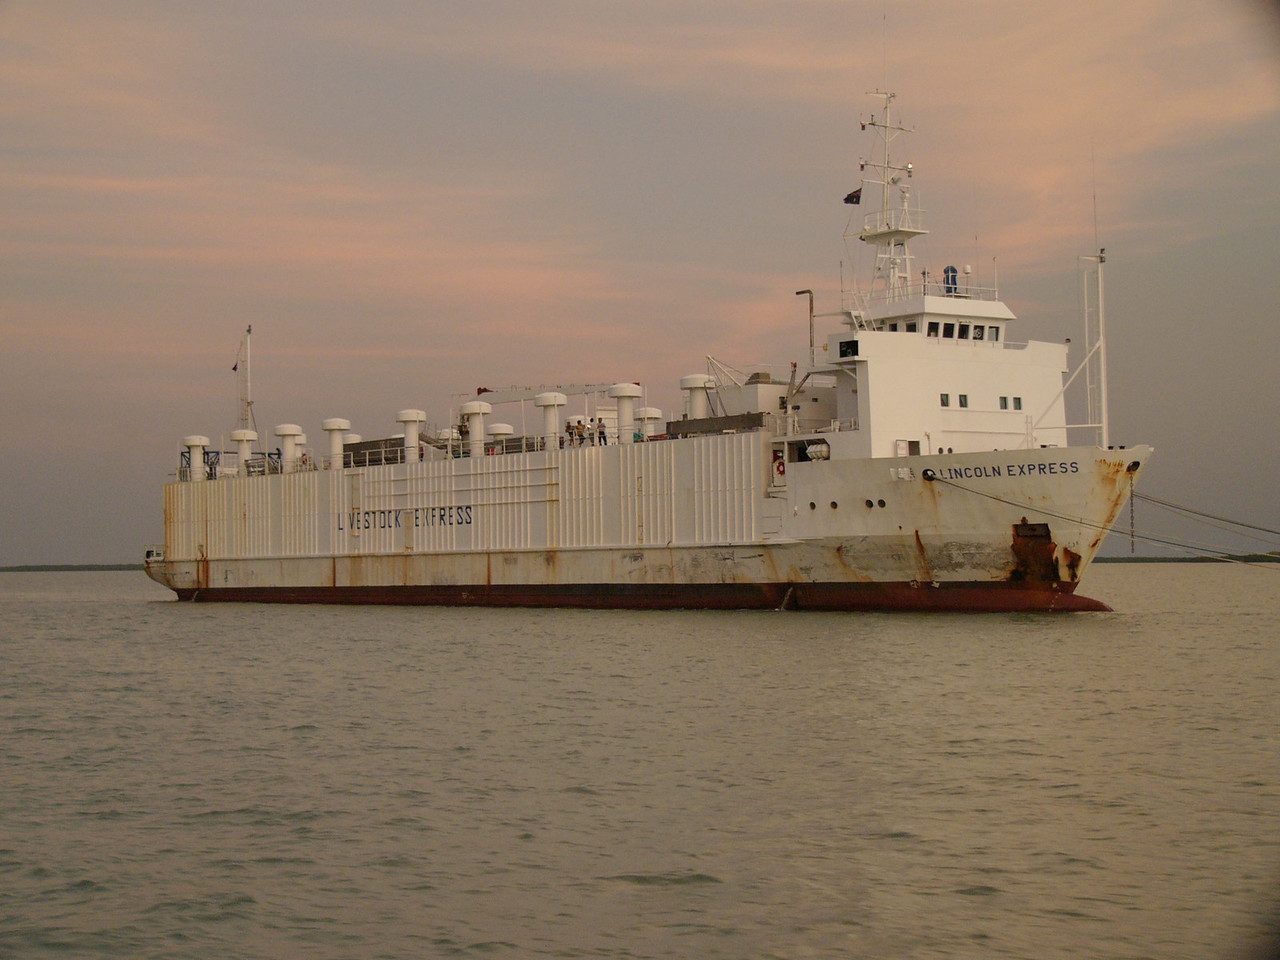 Livestock transport ship on Darwin harbour. Live animals, cattle and sheep, are transported from Australia to other countries (mostly Muslim, who have ceremonial and ritual traditions regarding slaughter and sacrifice). The trade is sometimes controversial, since some animals die during the voyage.